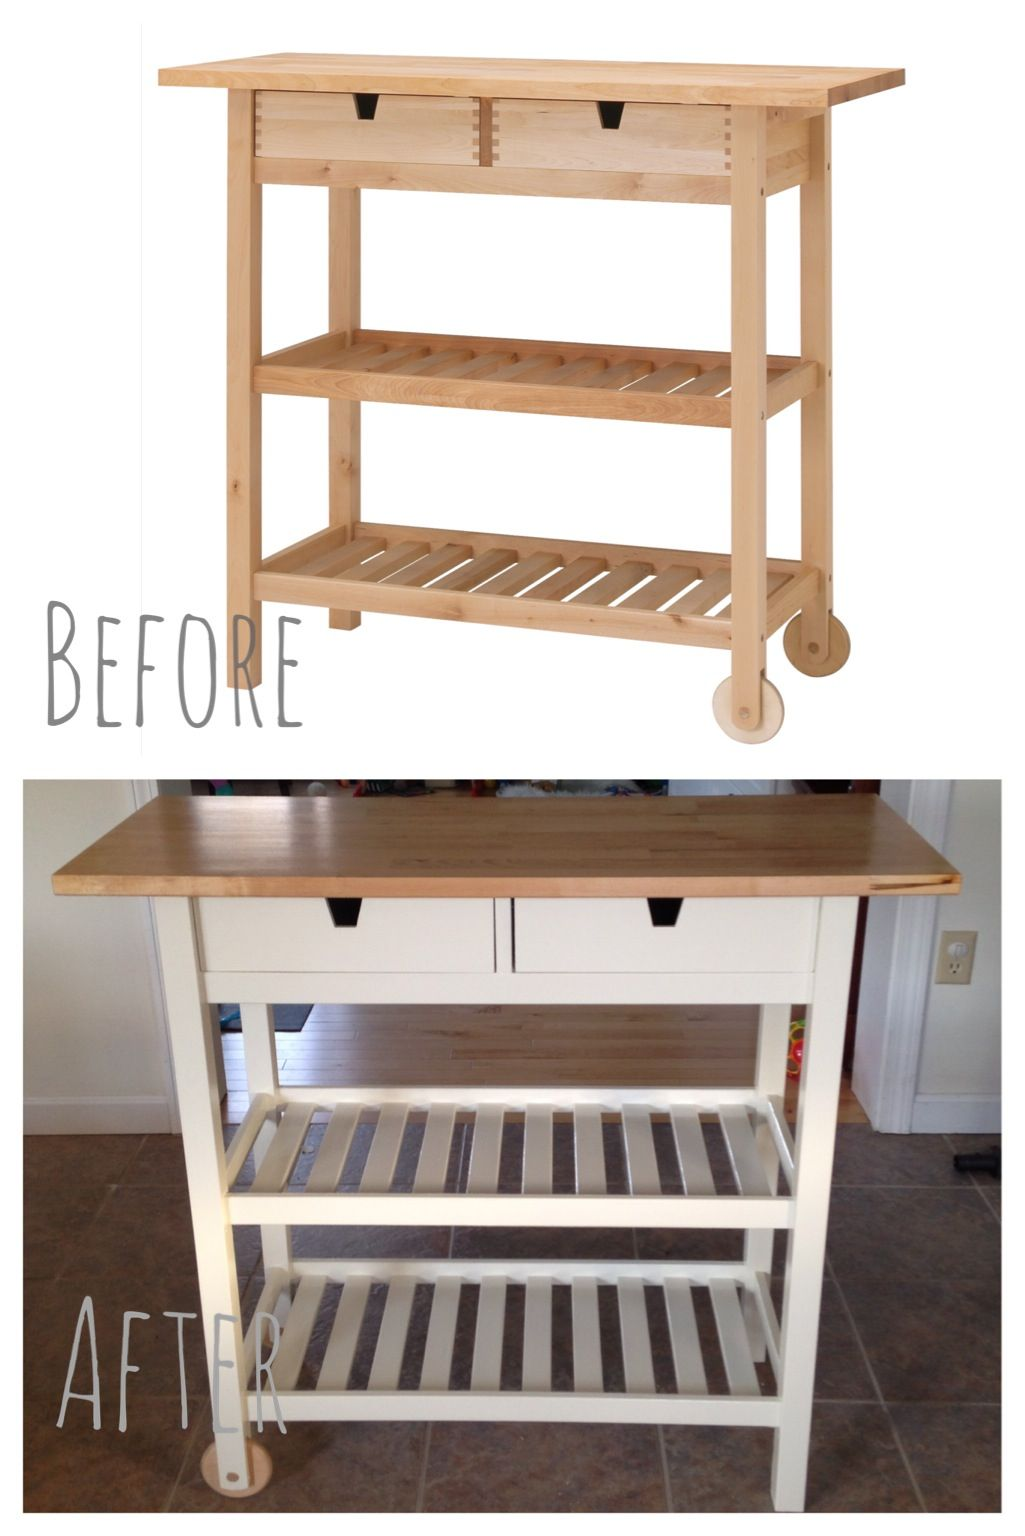 I Customized This Ikea Forhoja Kitchen Cart And Custom Paint To